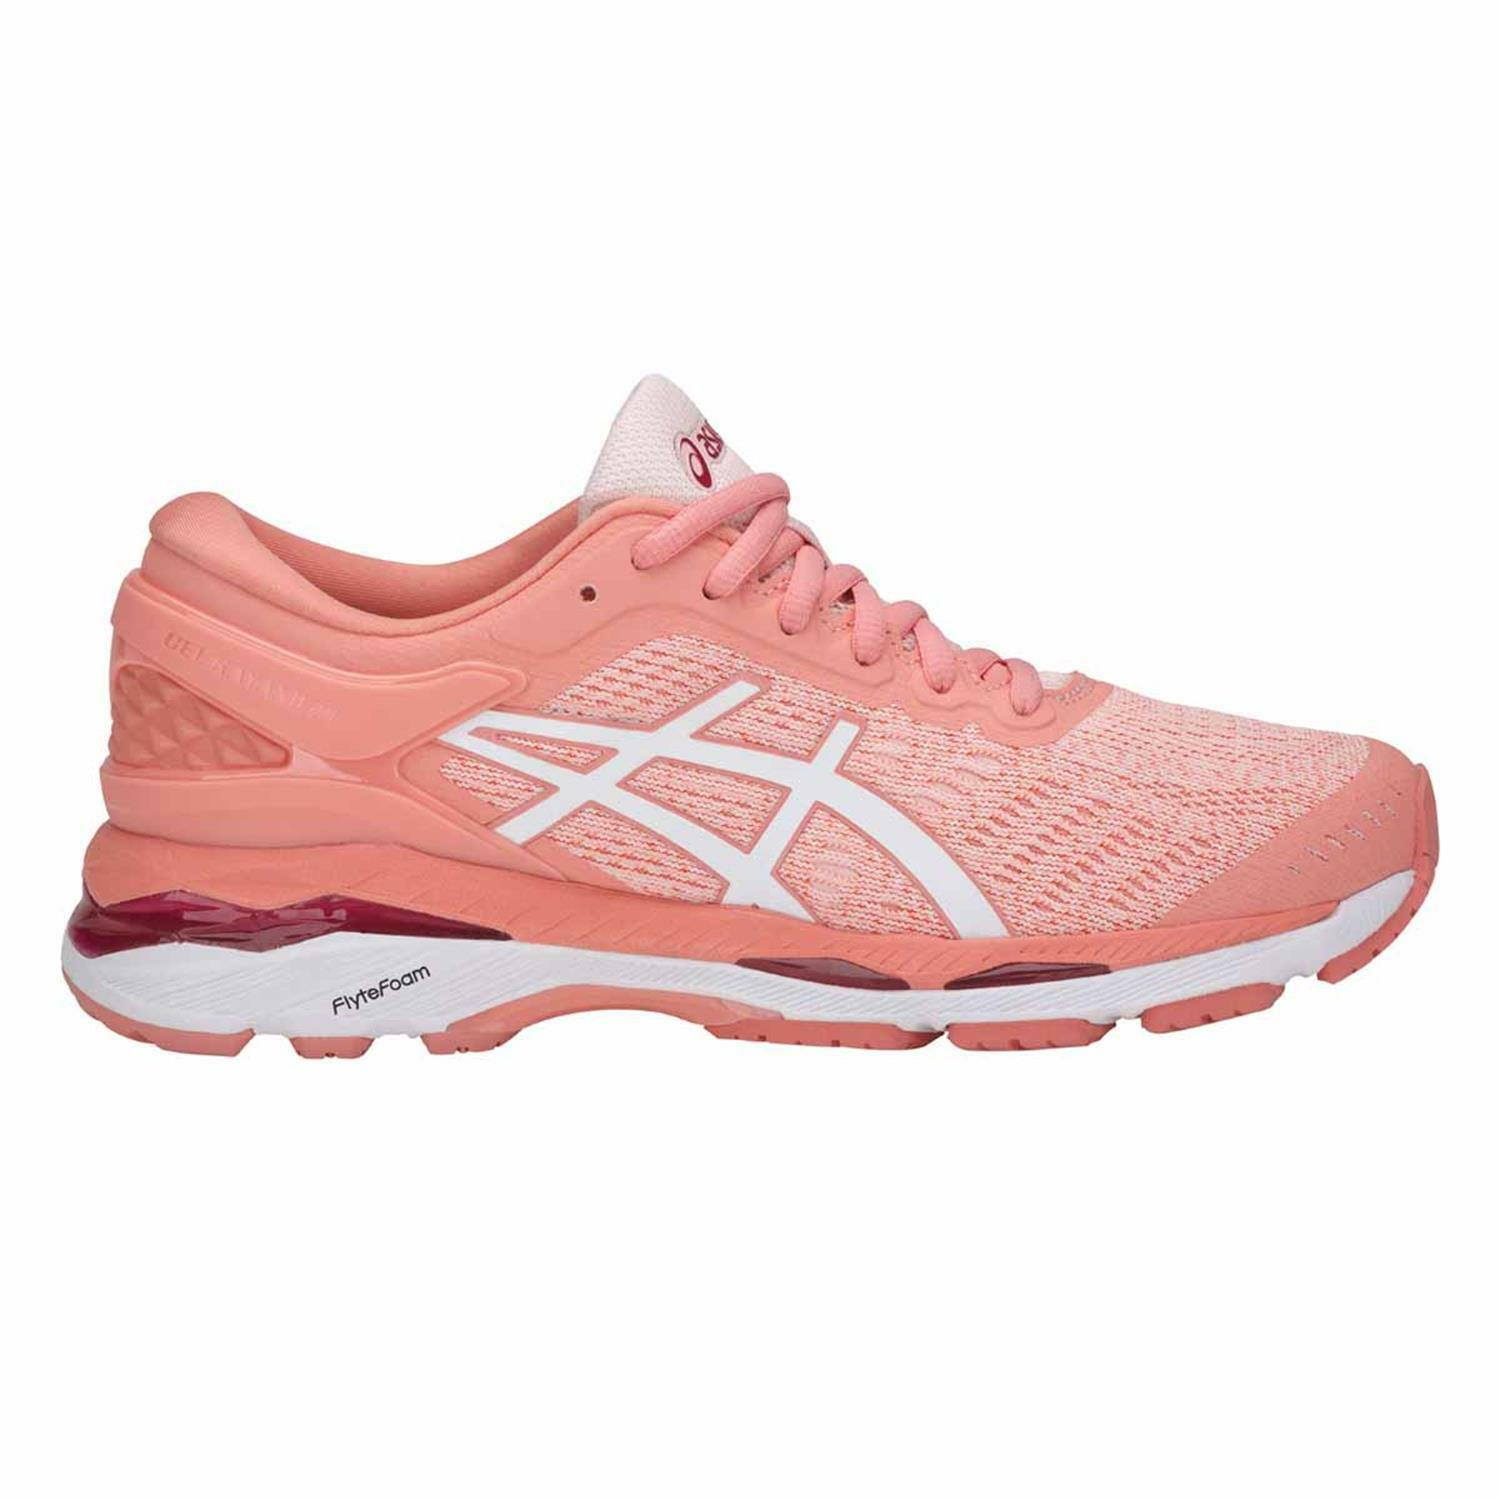 **Authentic** Asics Gel Kayano 24 Womens Running Shoes Price reduction Price reduction Comfortable and good-looking